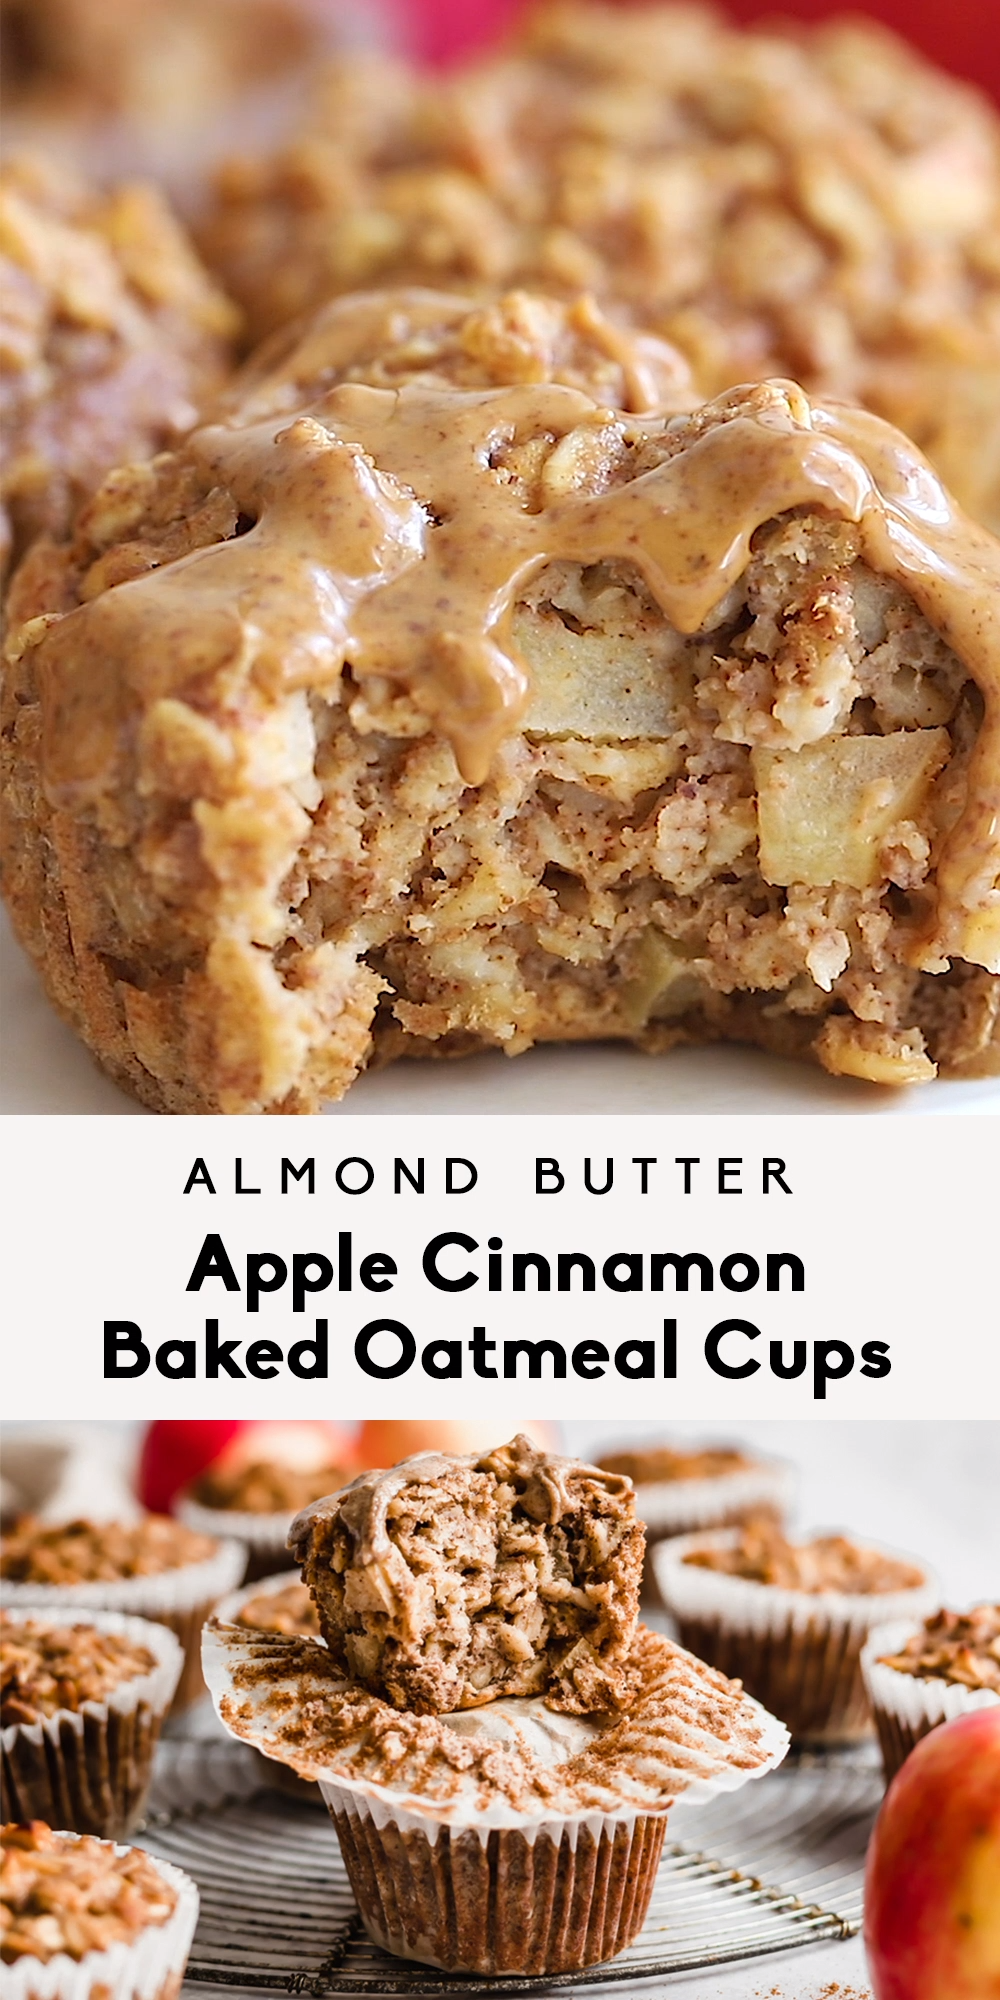 Almond Butter Apple Cinnamon Baked Oatmeal Cups #easythingstocook